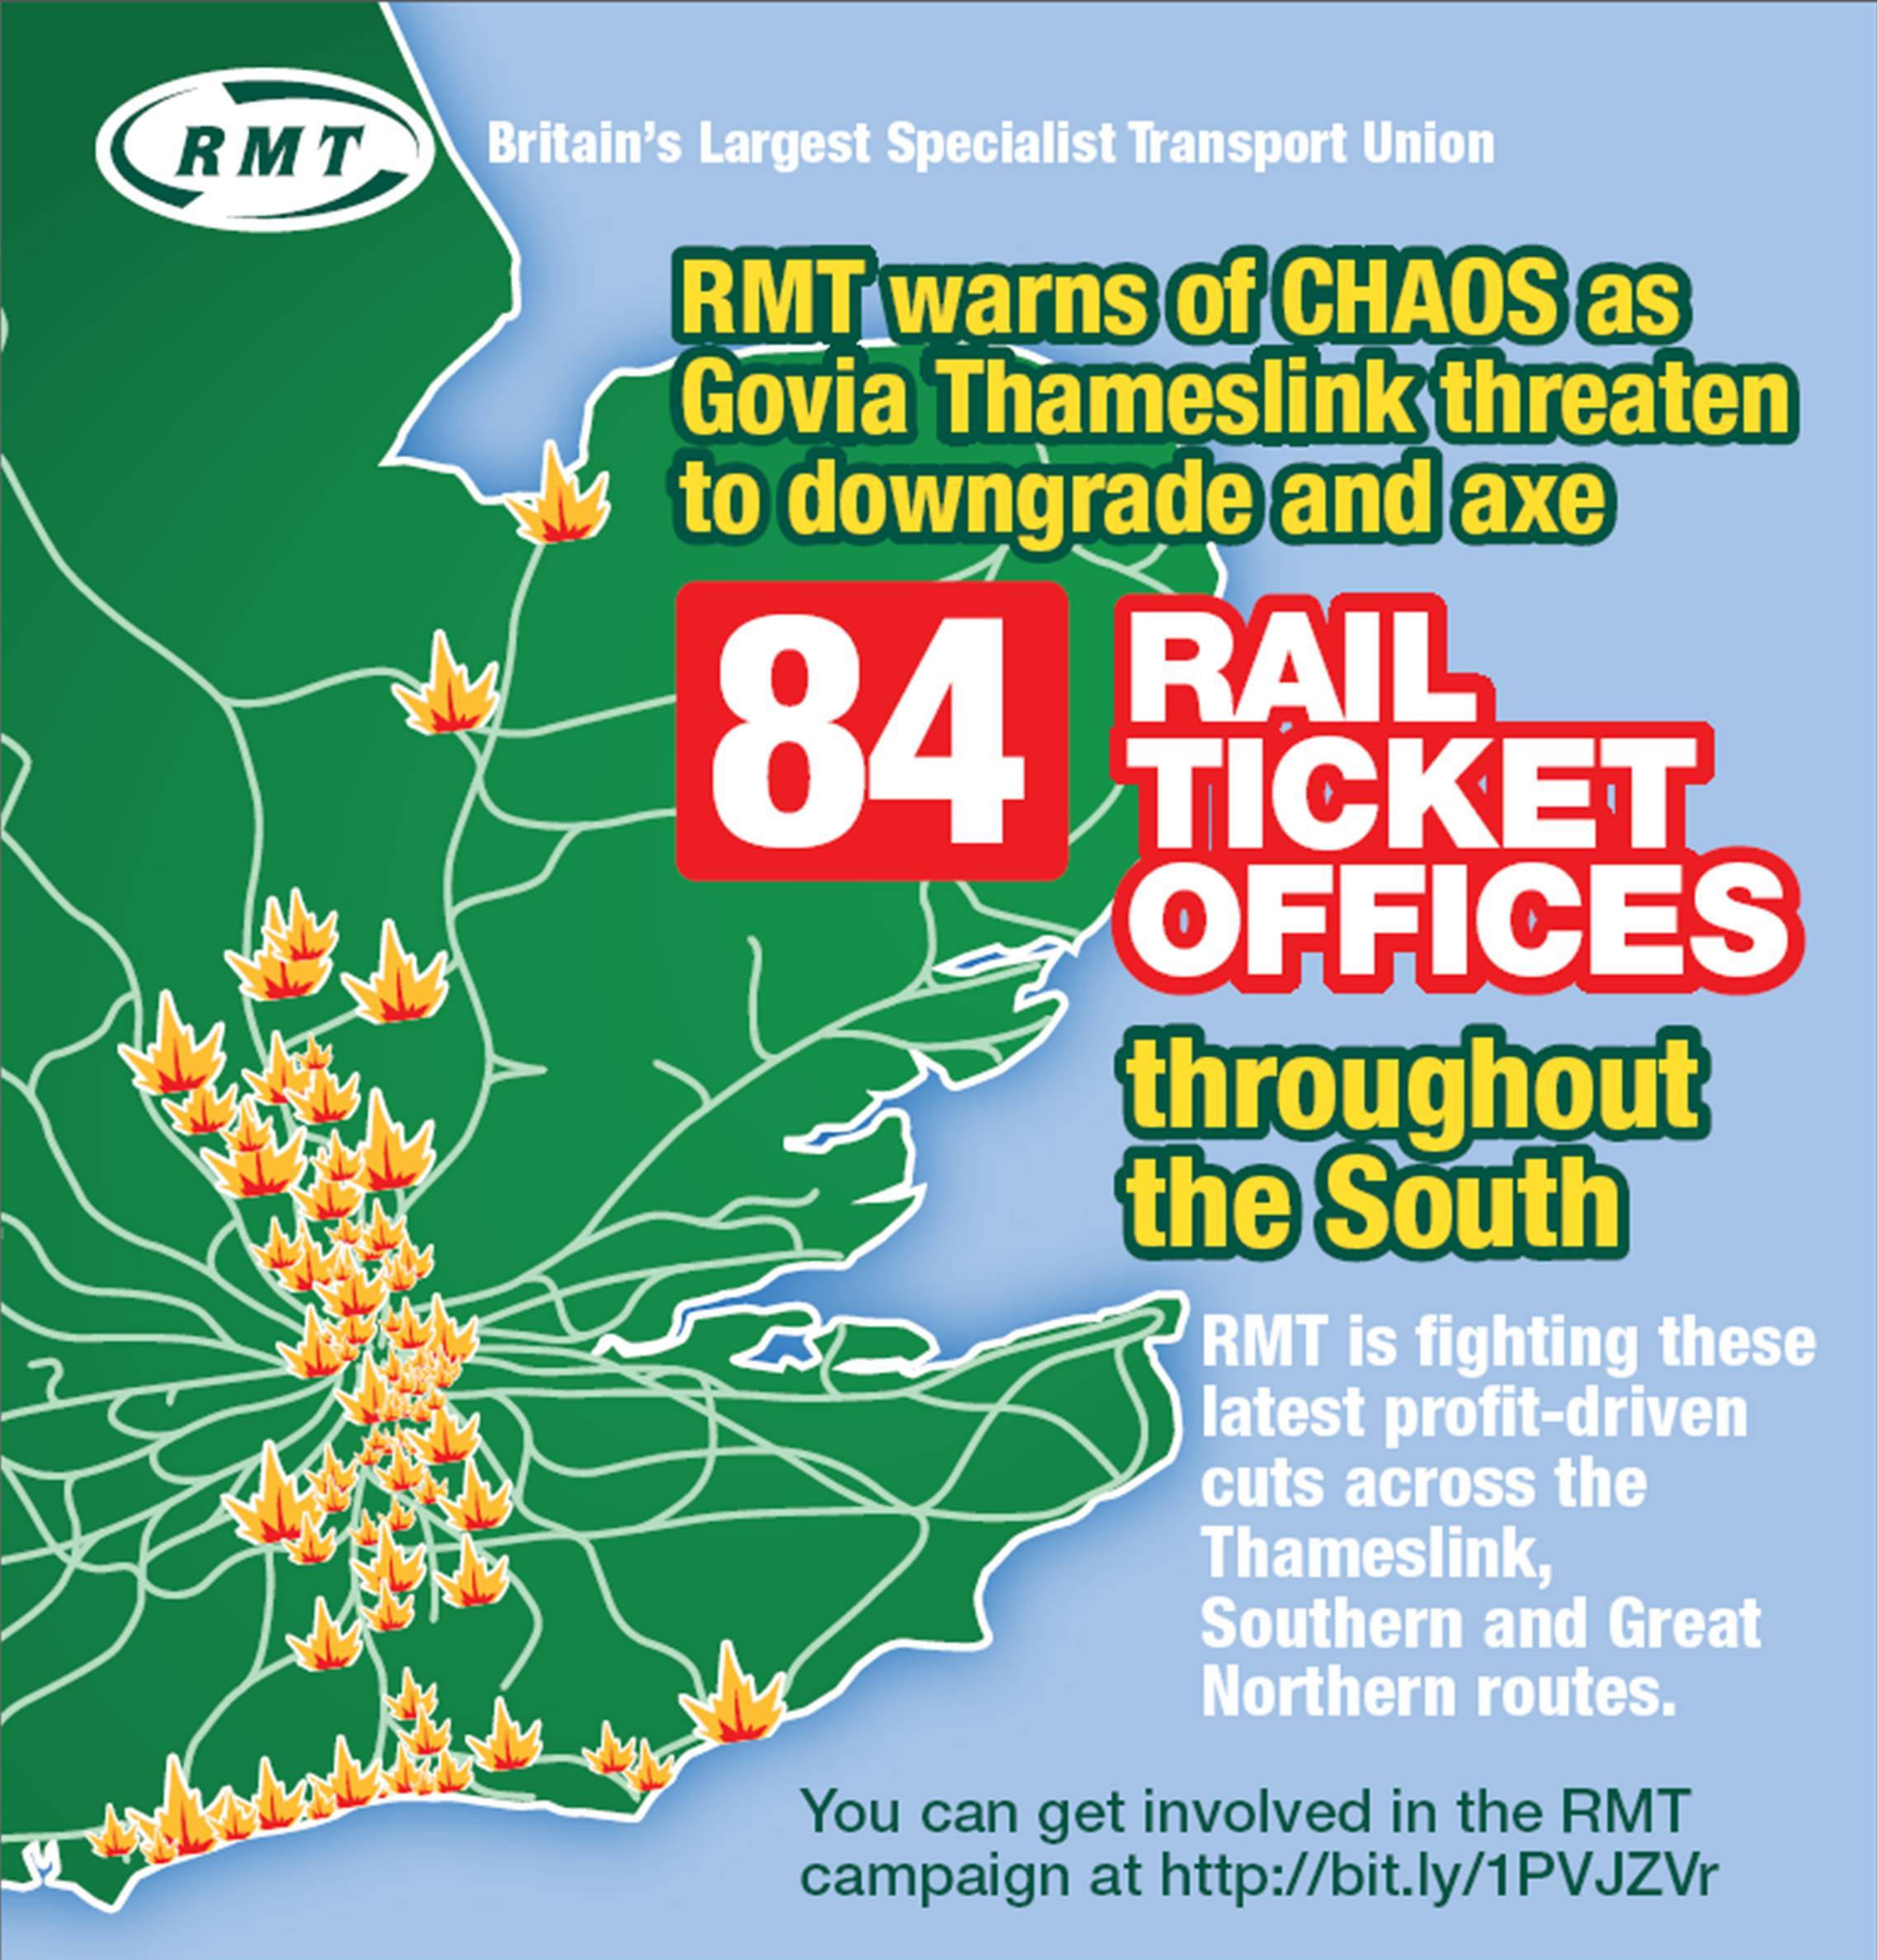 RMT secures victory in fight to stop